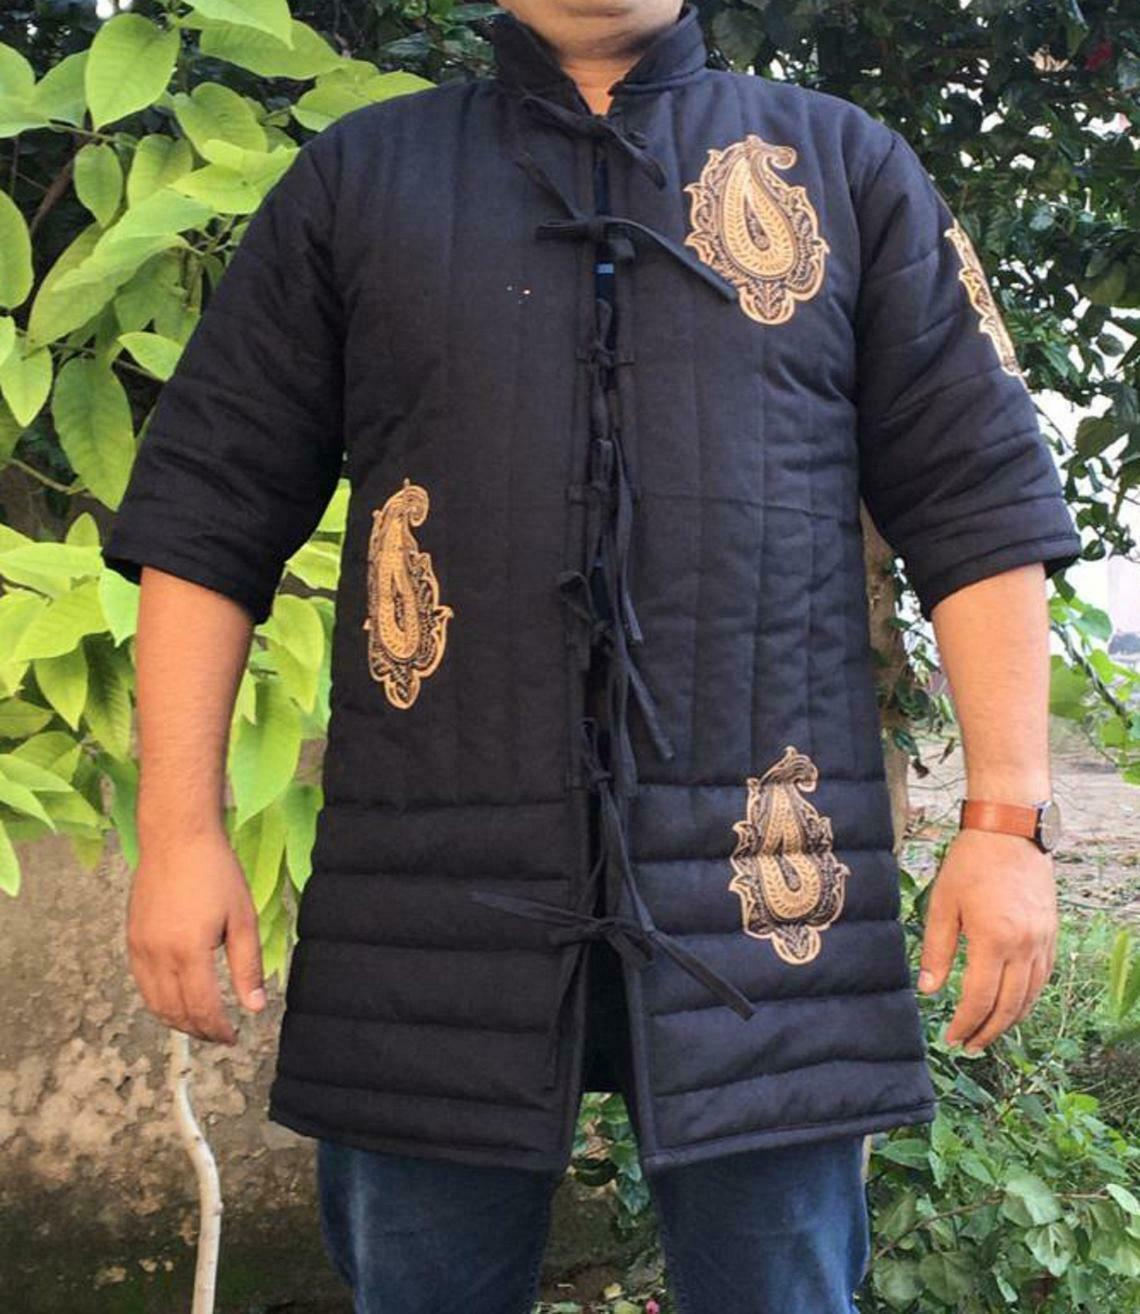 Medieval Gambeson With Paint for SCA Larp,Thick padded black color gambeson